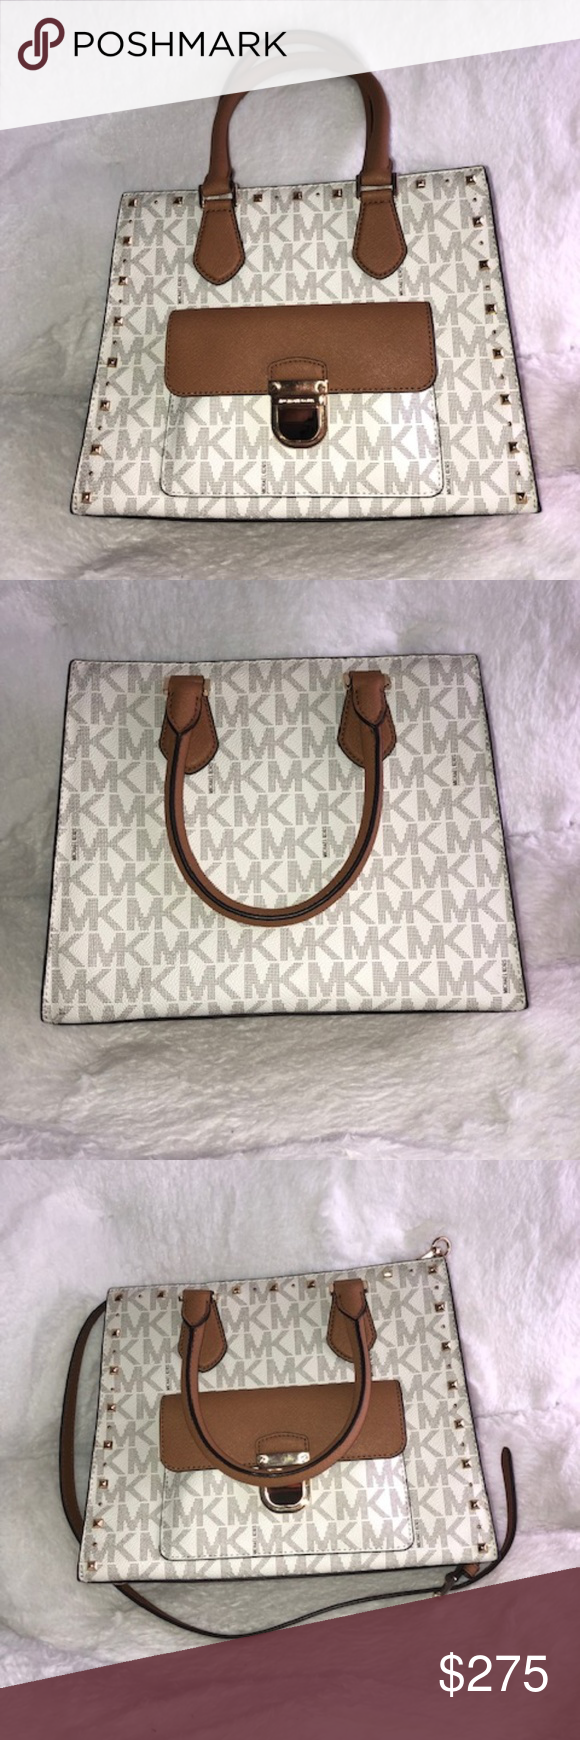 Micheal Kors Bridgette Stud Md Tote Never been used Michael